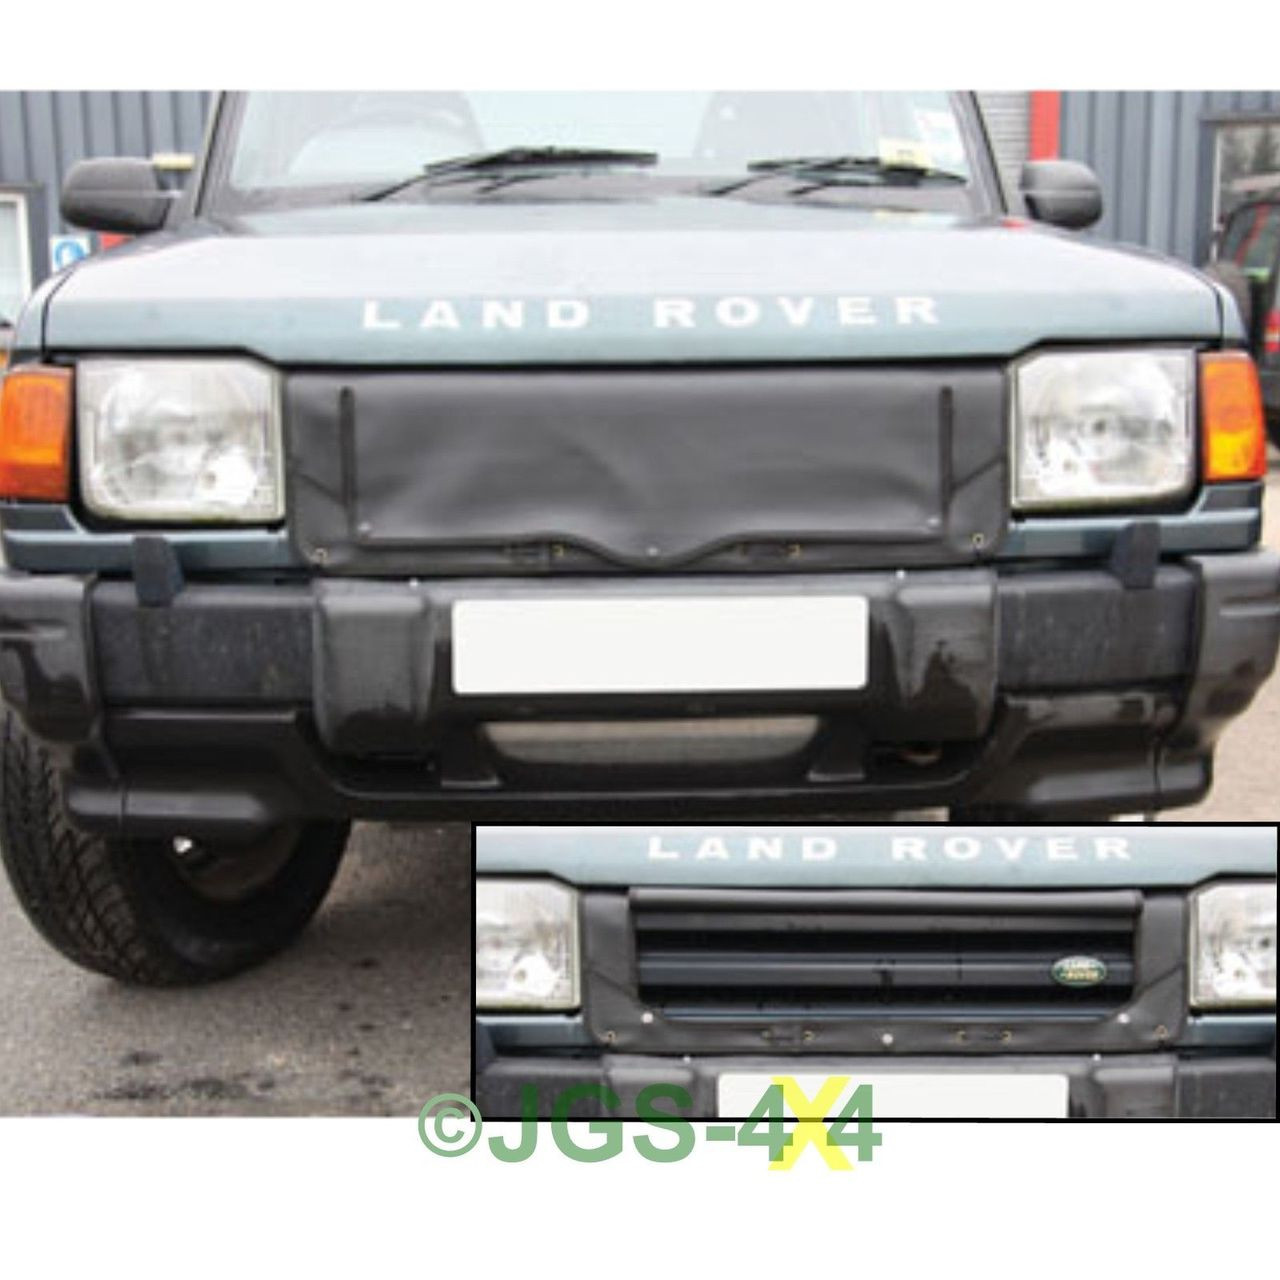 1998 Land Rover Range Rover Interior: Land Rover Discovery 1 Radiator Muff Grill Cover 300TDi